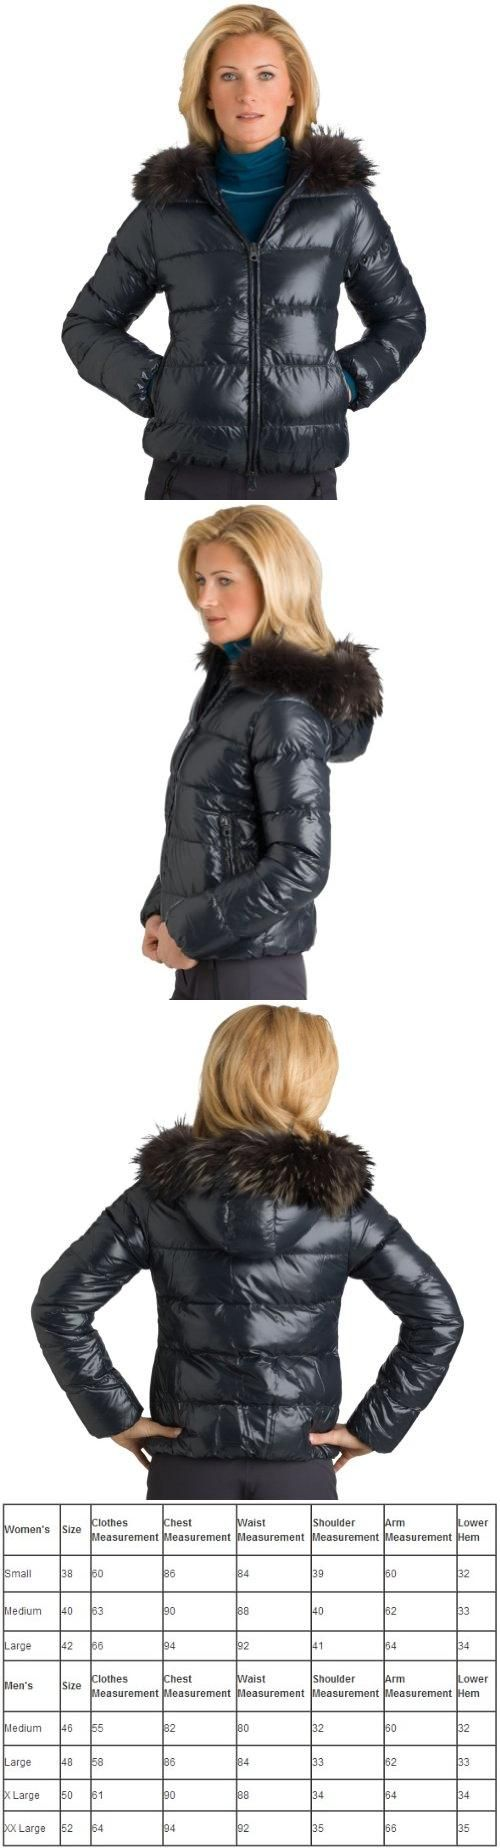 Duvetica Women's Adhara 42 Dark Grey Insulated With 100% New Goose Down To Keep You Warm Without Adding Bulk. 100% Polyamide Exterior And Lining. Detachable Faux-Fur Trim Adds Cozy Warmth. Includes A Full-Zip Front And 2 Zippered Side Pockets. #Duvetica #Sports